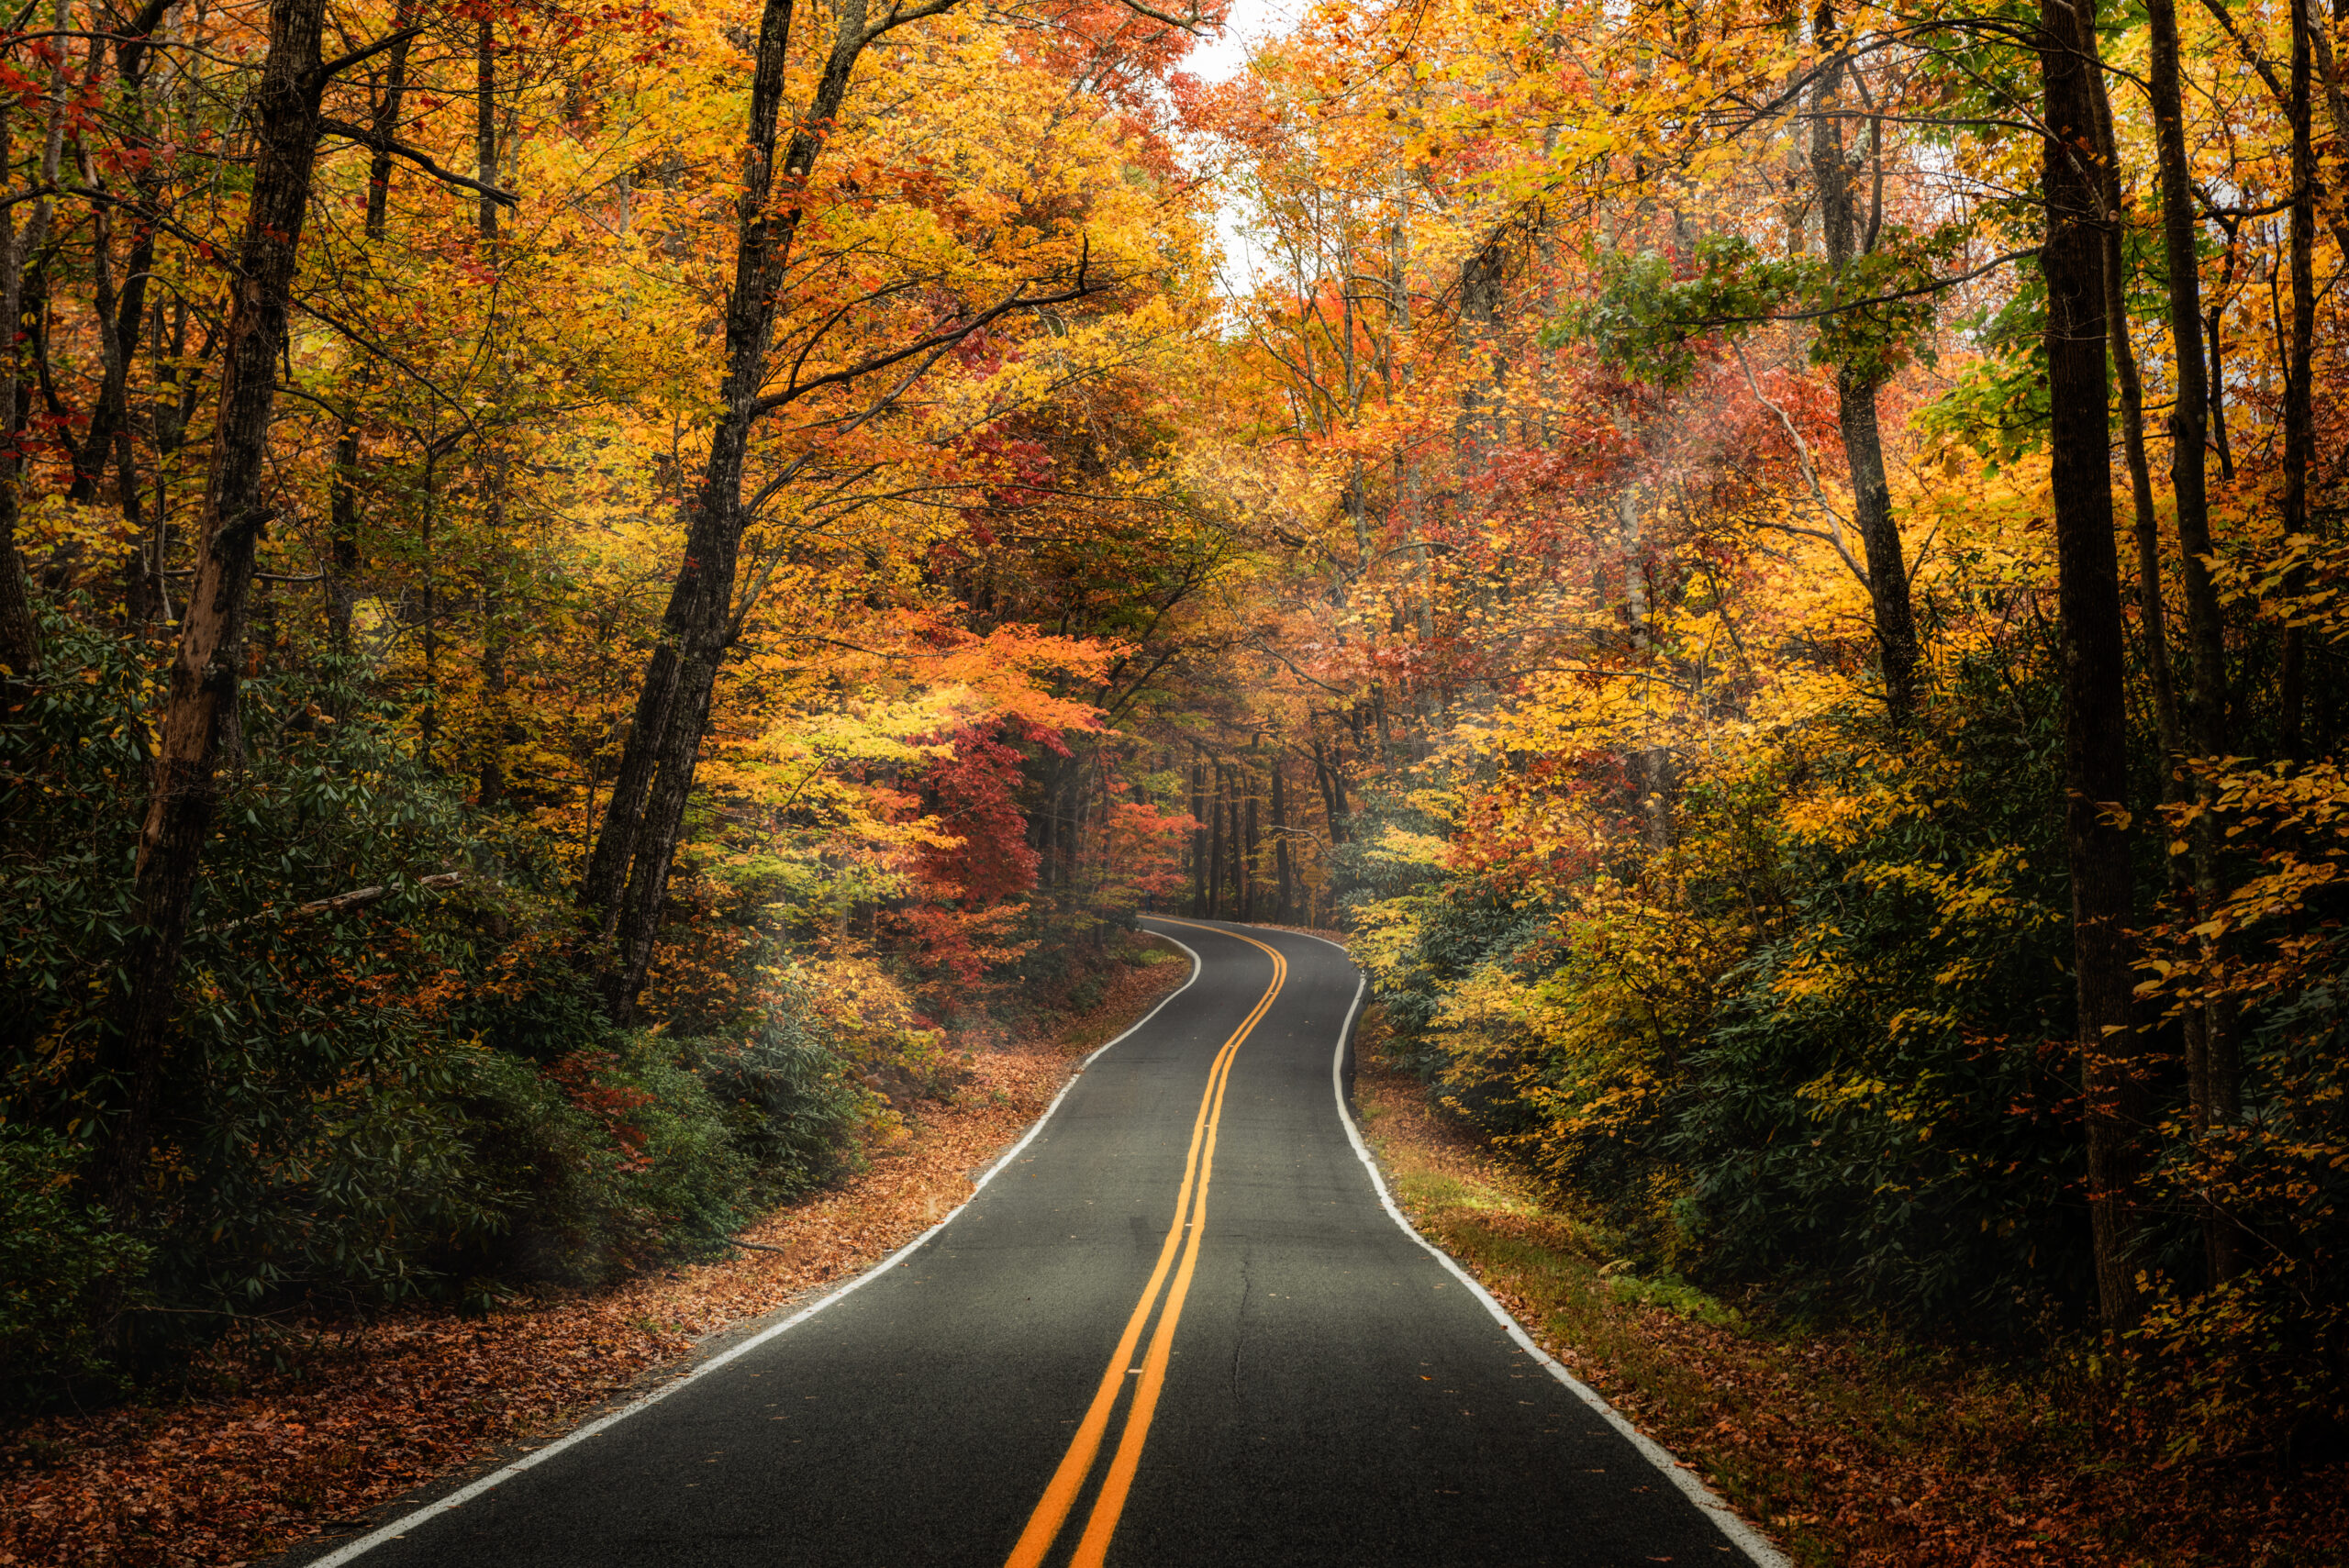 best new england fall foliage tours - image of empty road surrounded by autumn colored trees